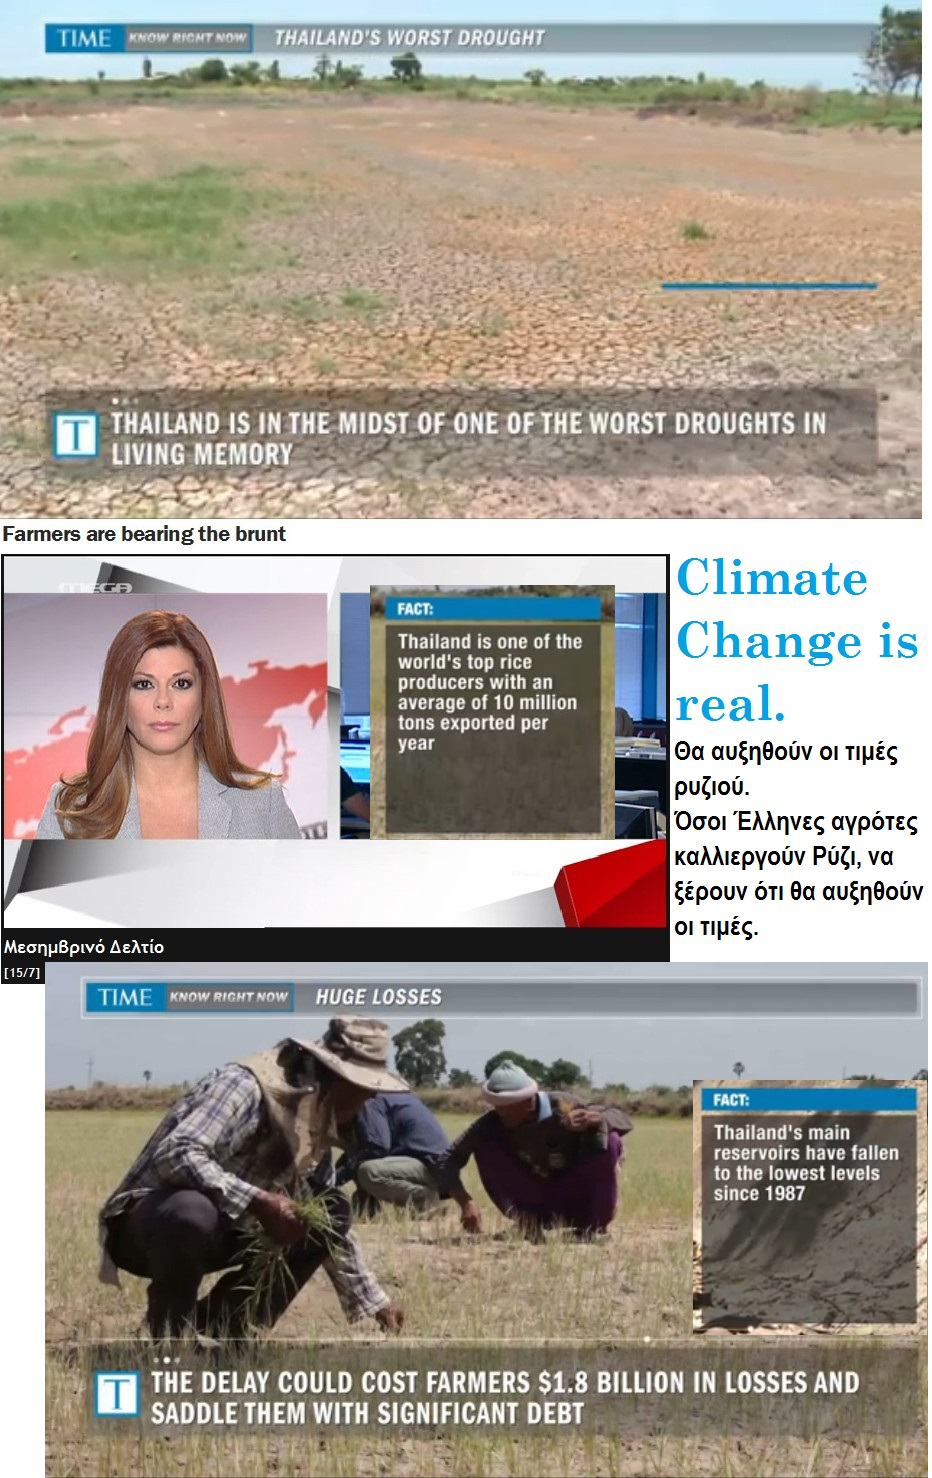 THAILAND WORST DROUGHTS CLIMATE CHANGE 01 170715